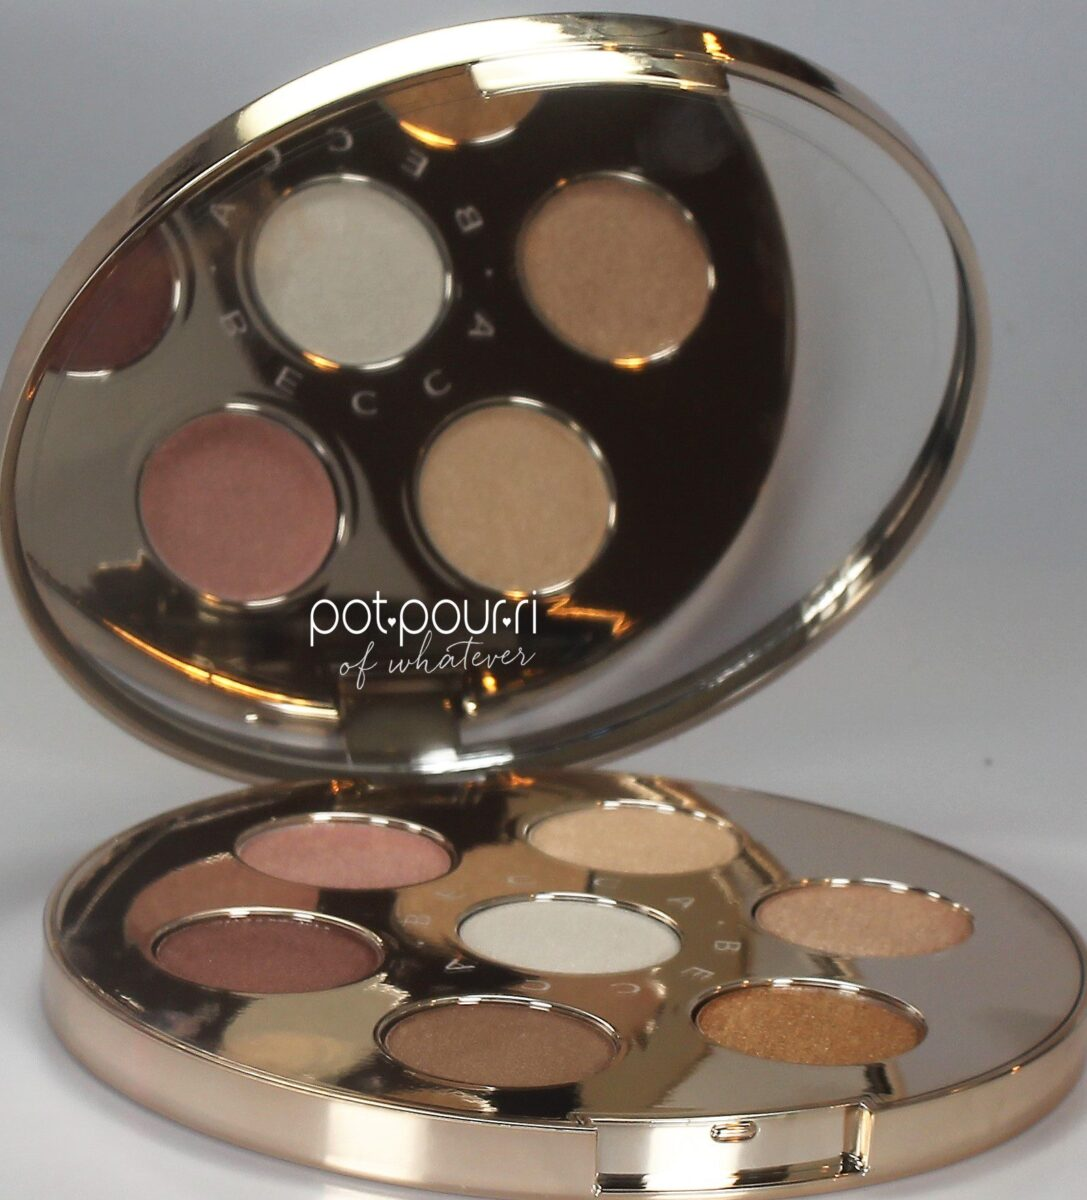 Becca-new-eyeshadow-palette